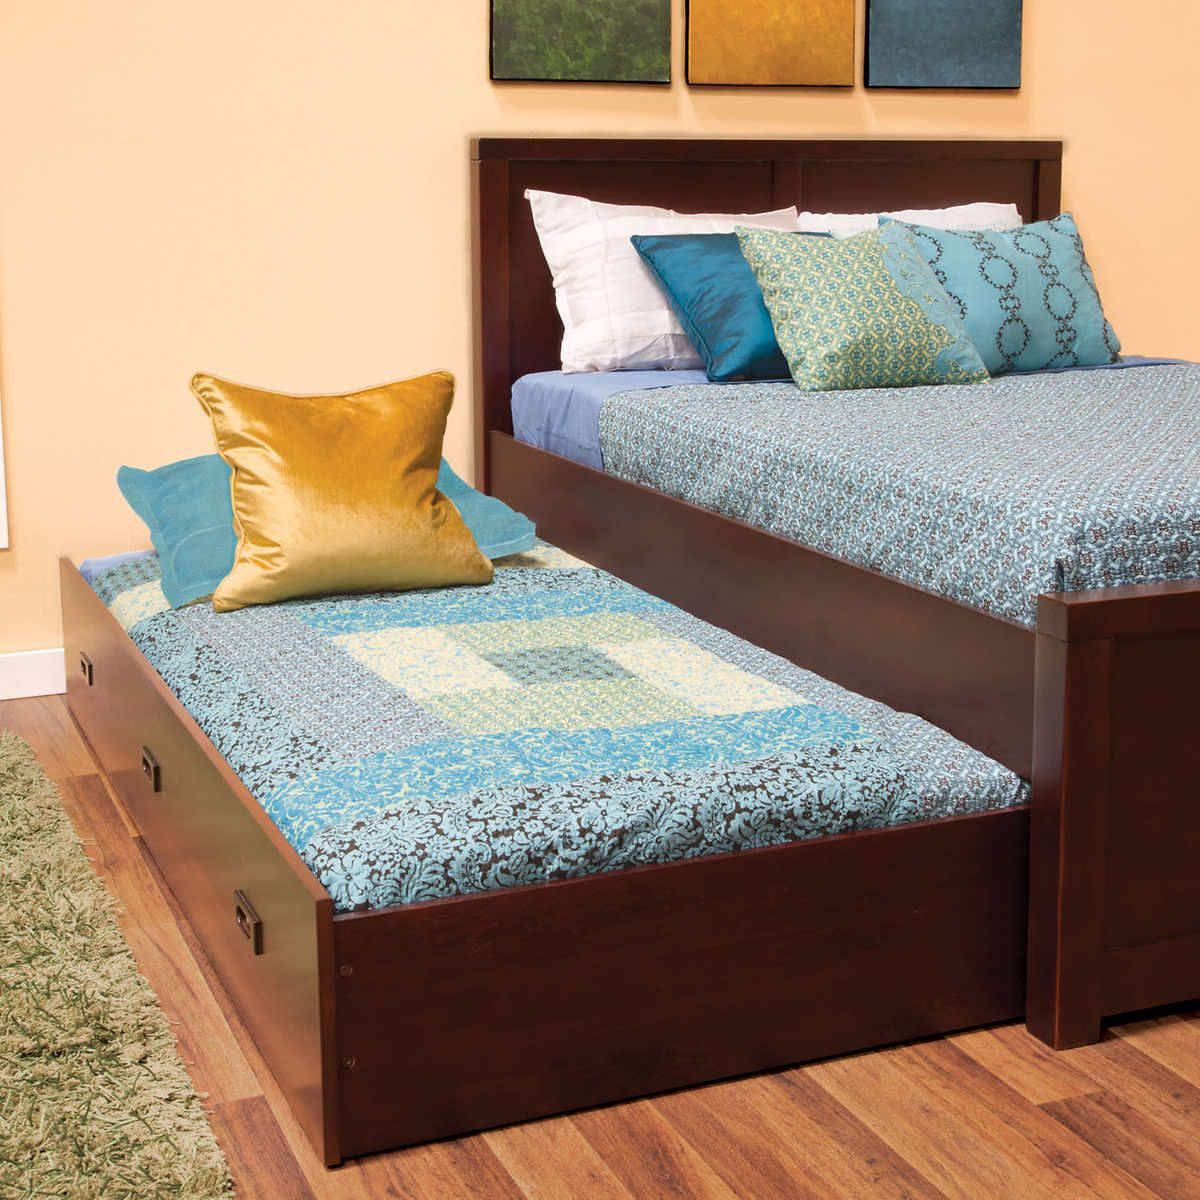 Pin By Thomas On Bedroom Full Bed With Trundle Bed Designs With Storage Bedroom Bed Design